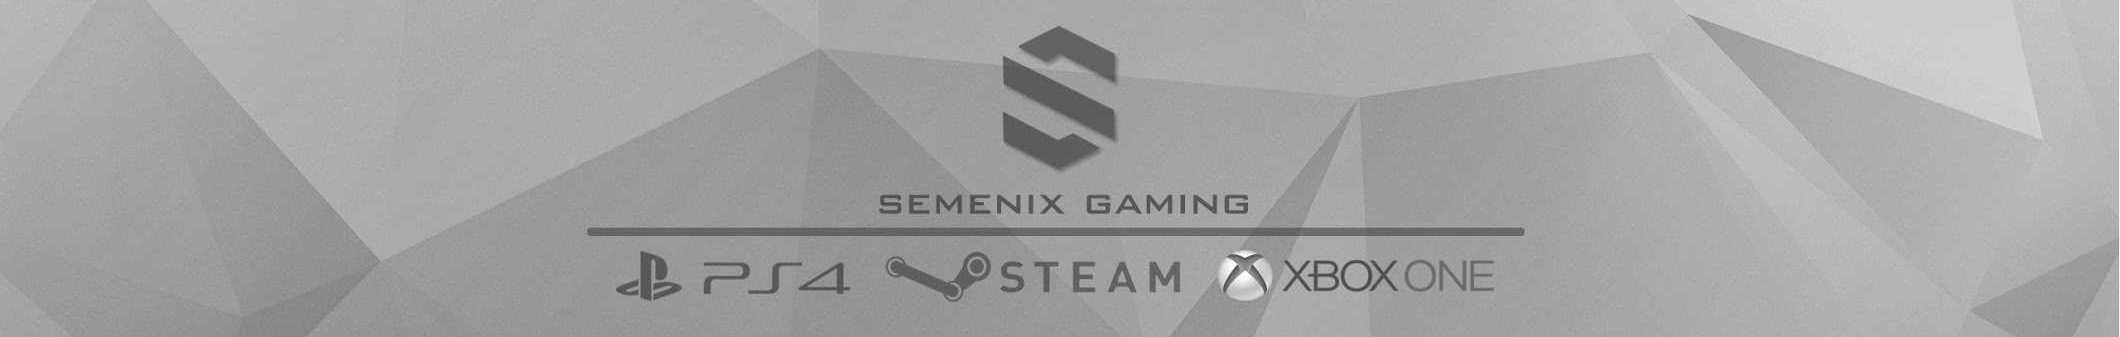 SemenixGaming banner